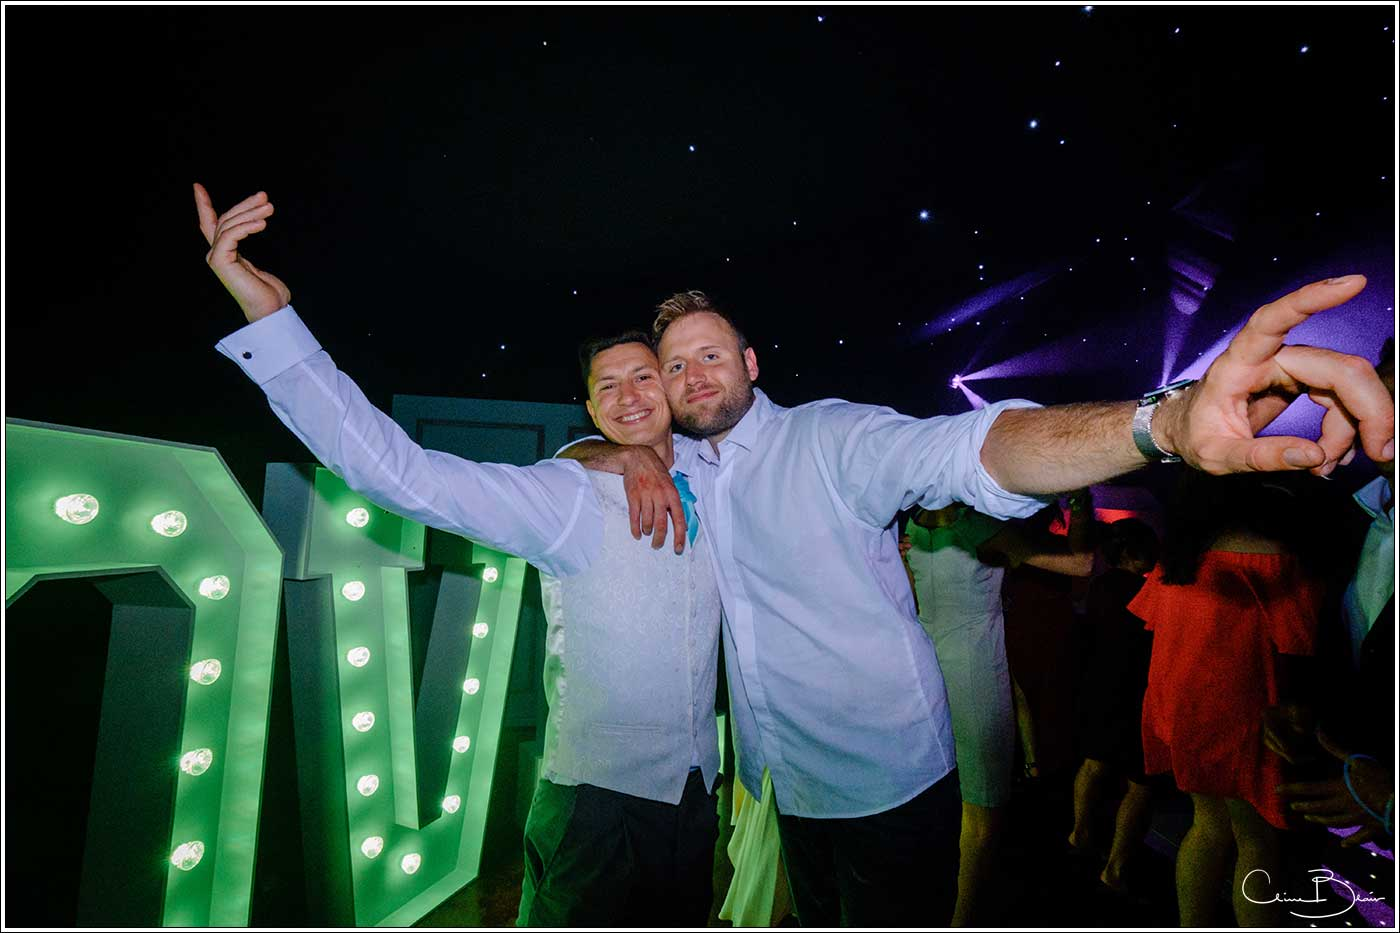 Coombe Abbey wedding photography showing 2 happy men on the dance floor